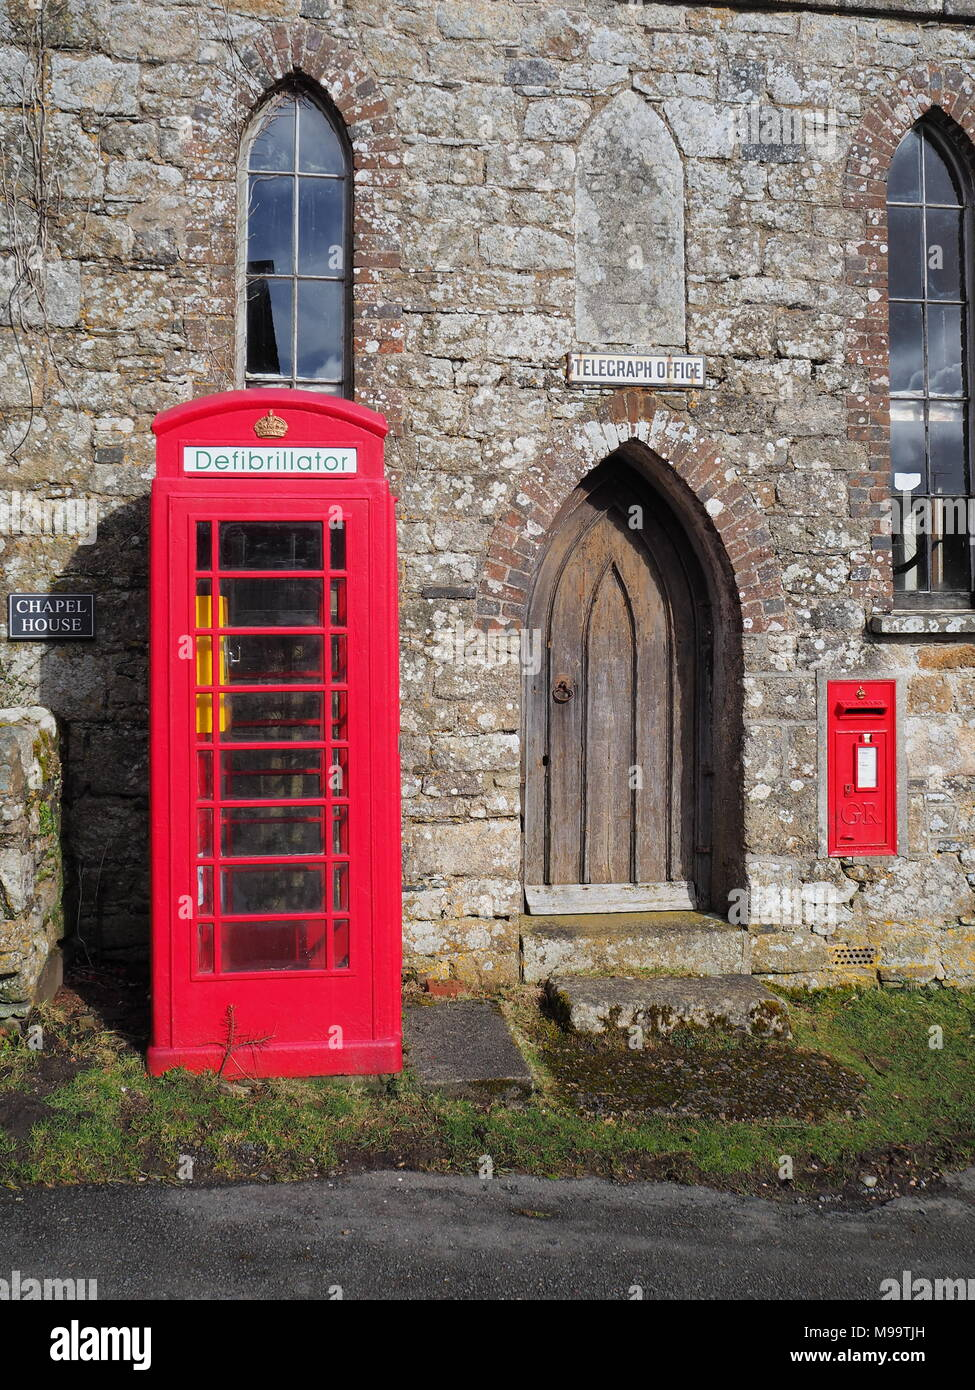 Traditional red British public telephone box containing a defibrillator unit, Dartmoor - Stock Image